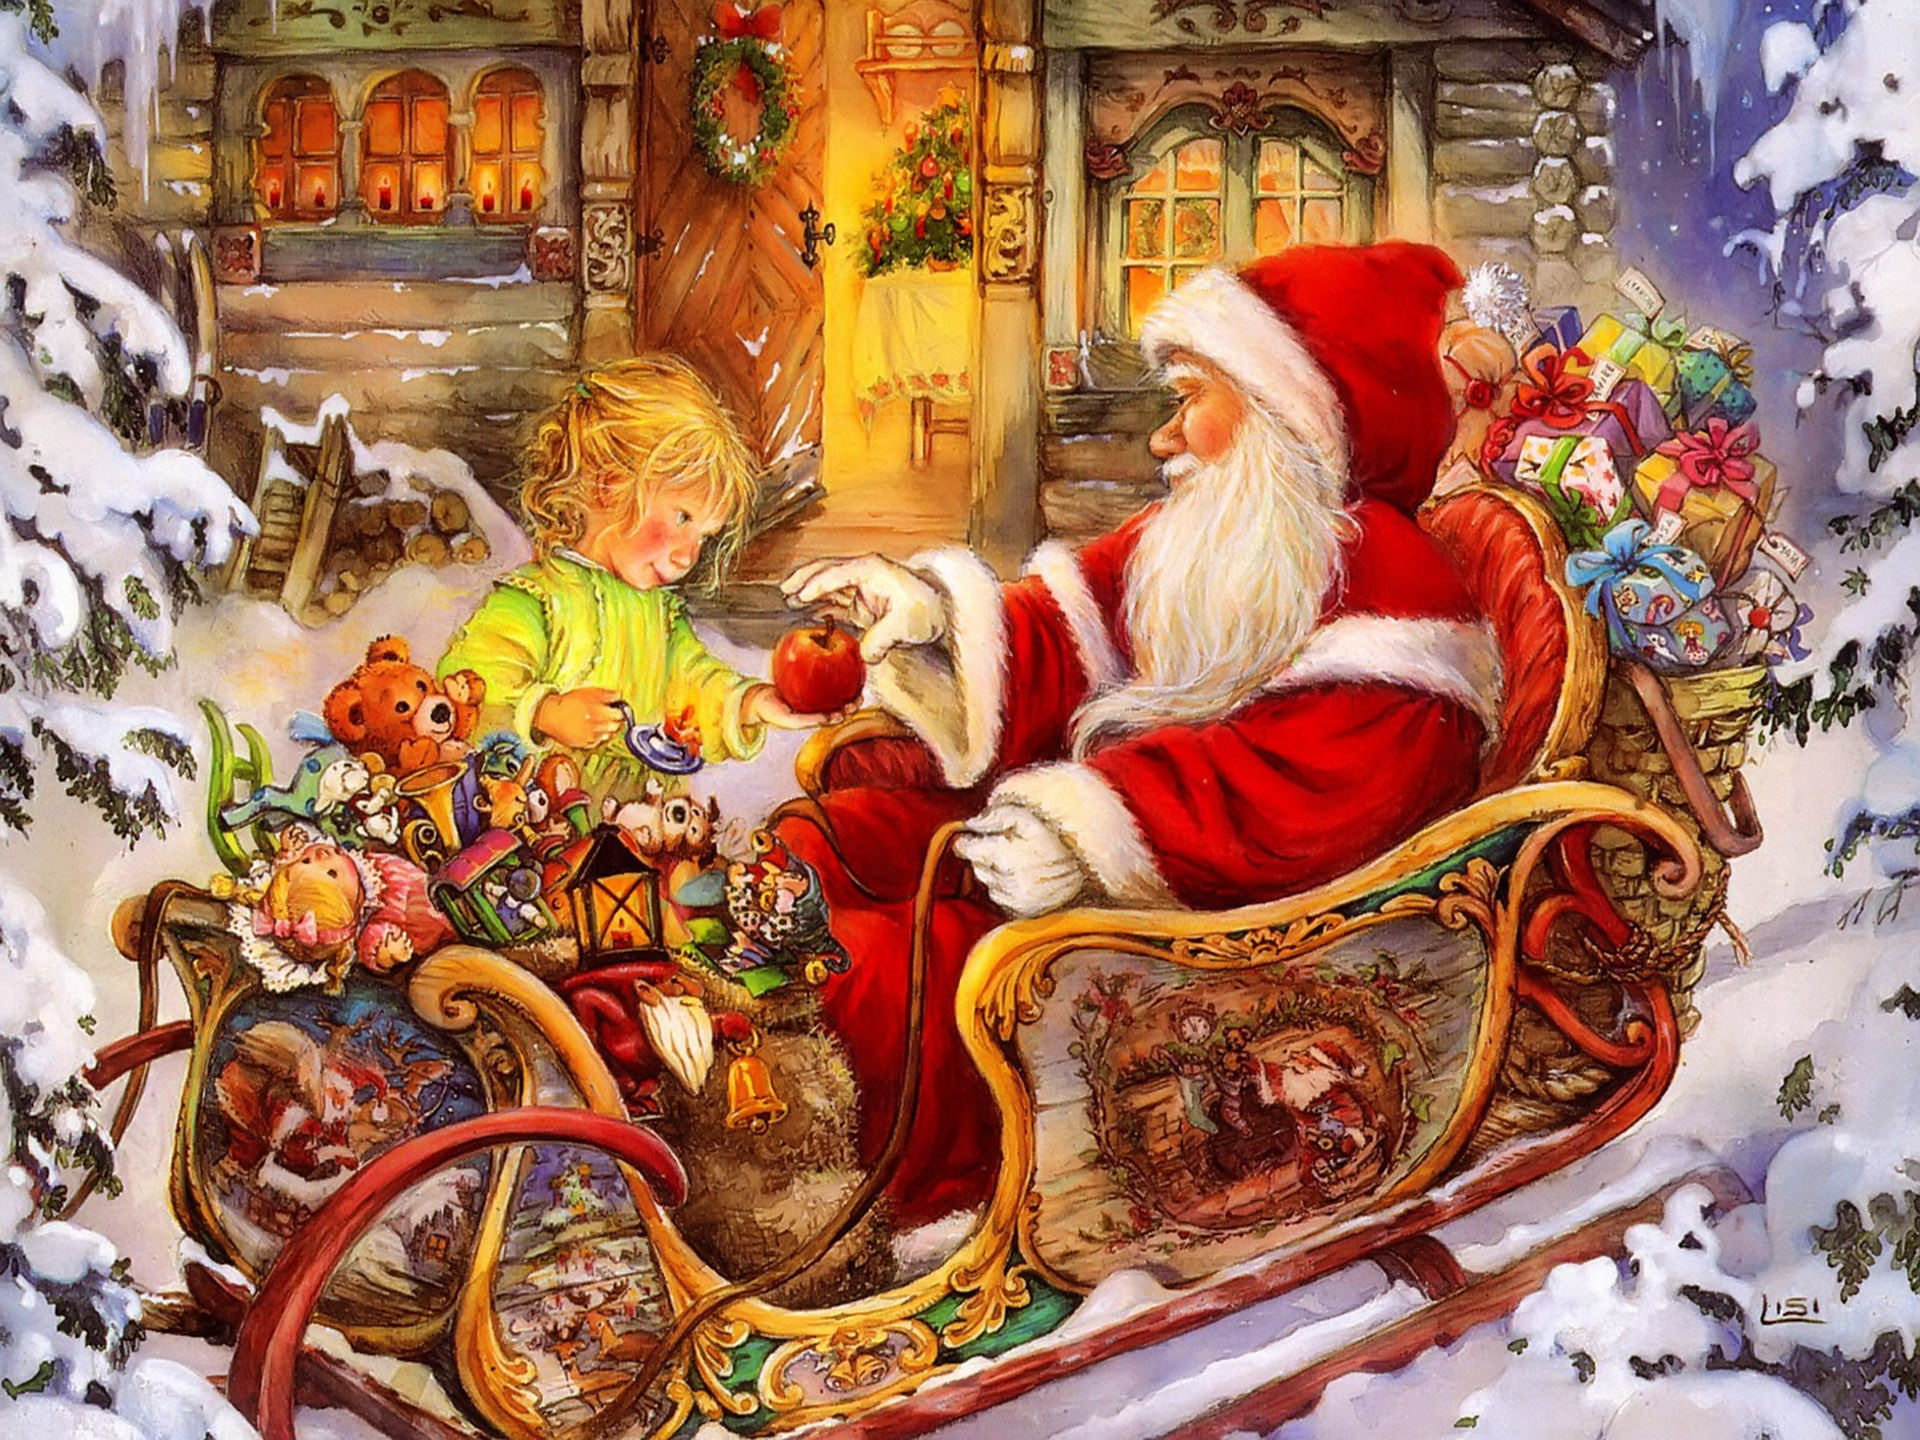 http://on-desktop.com/wps/New_Year_wallpapers_happy_new_year__santa_claus_051263_.jpg